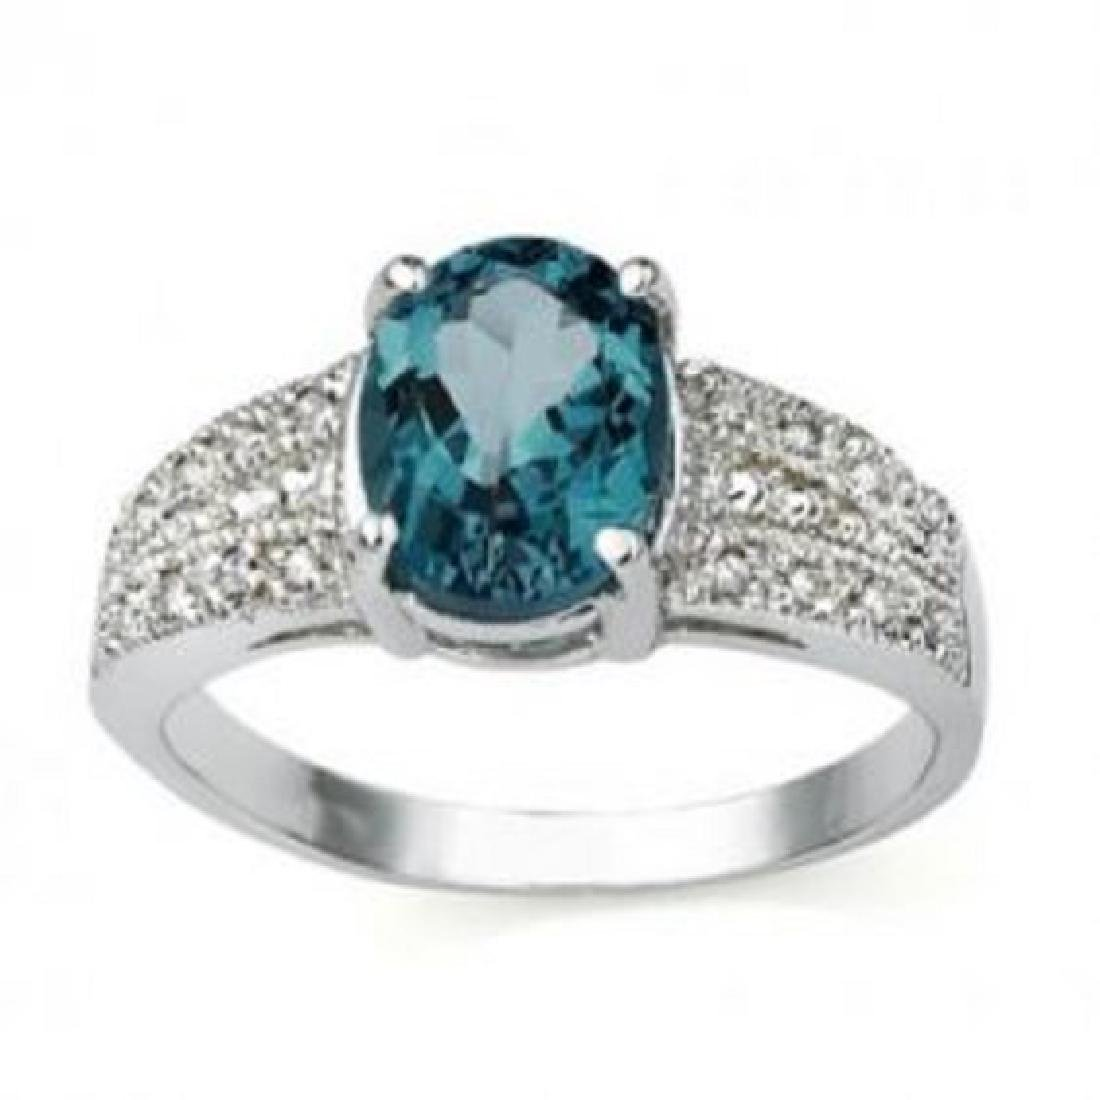 1.41 CT Certified Topaz & Diamond 14Kw Ring $4,170.00